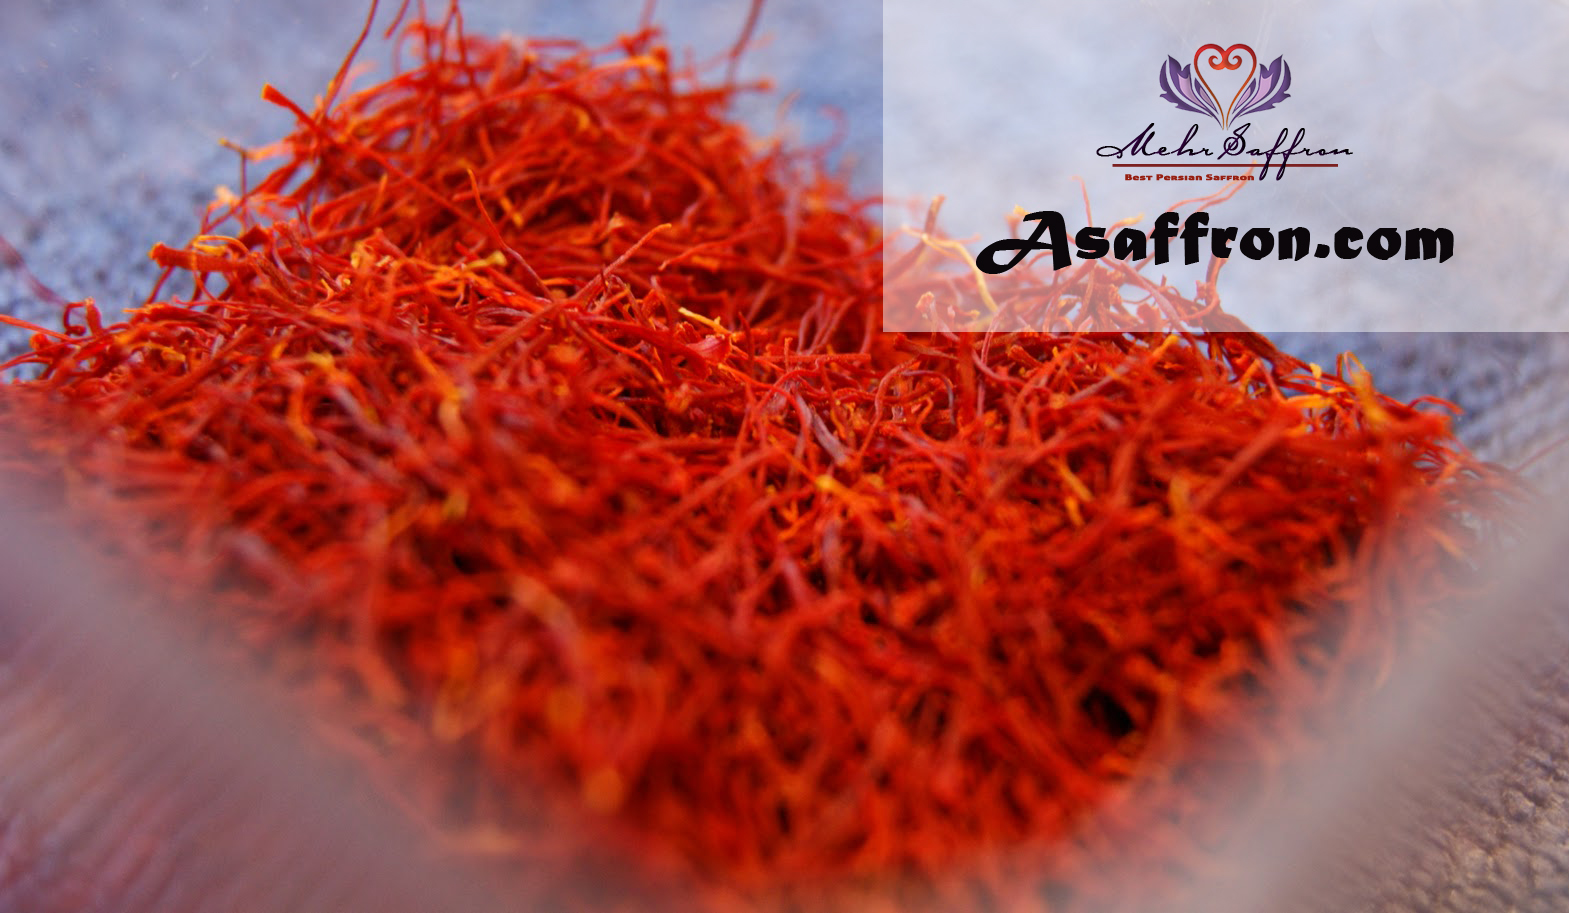 How To Lose Weight With Saffron